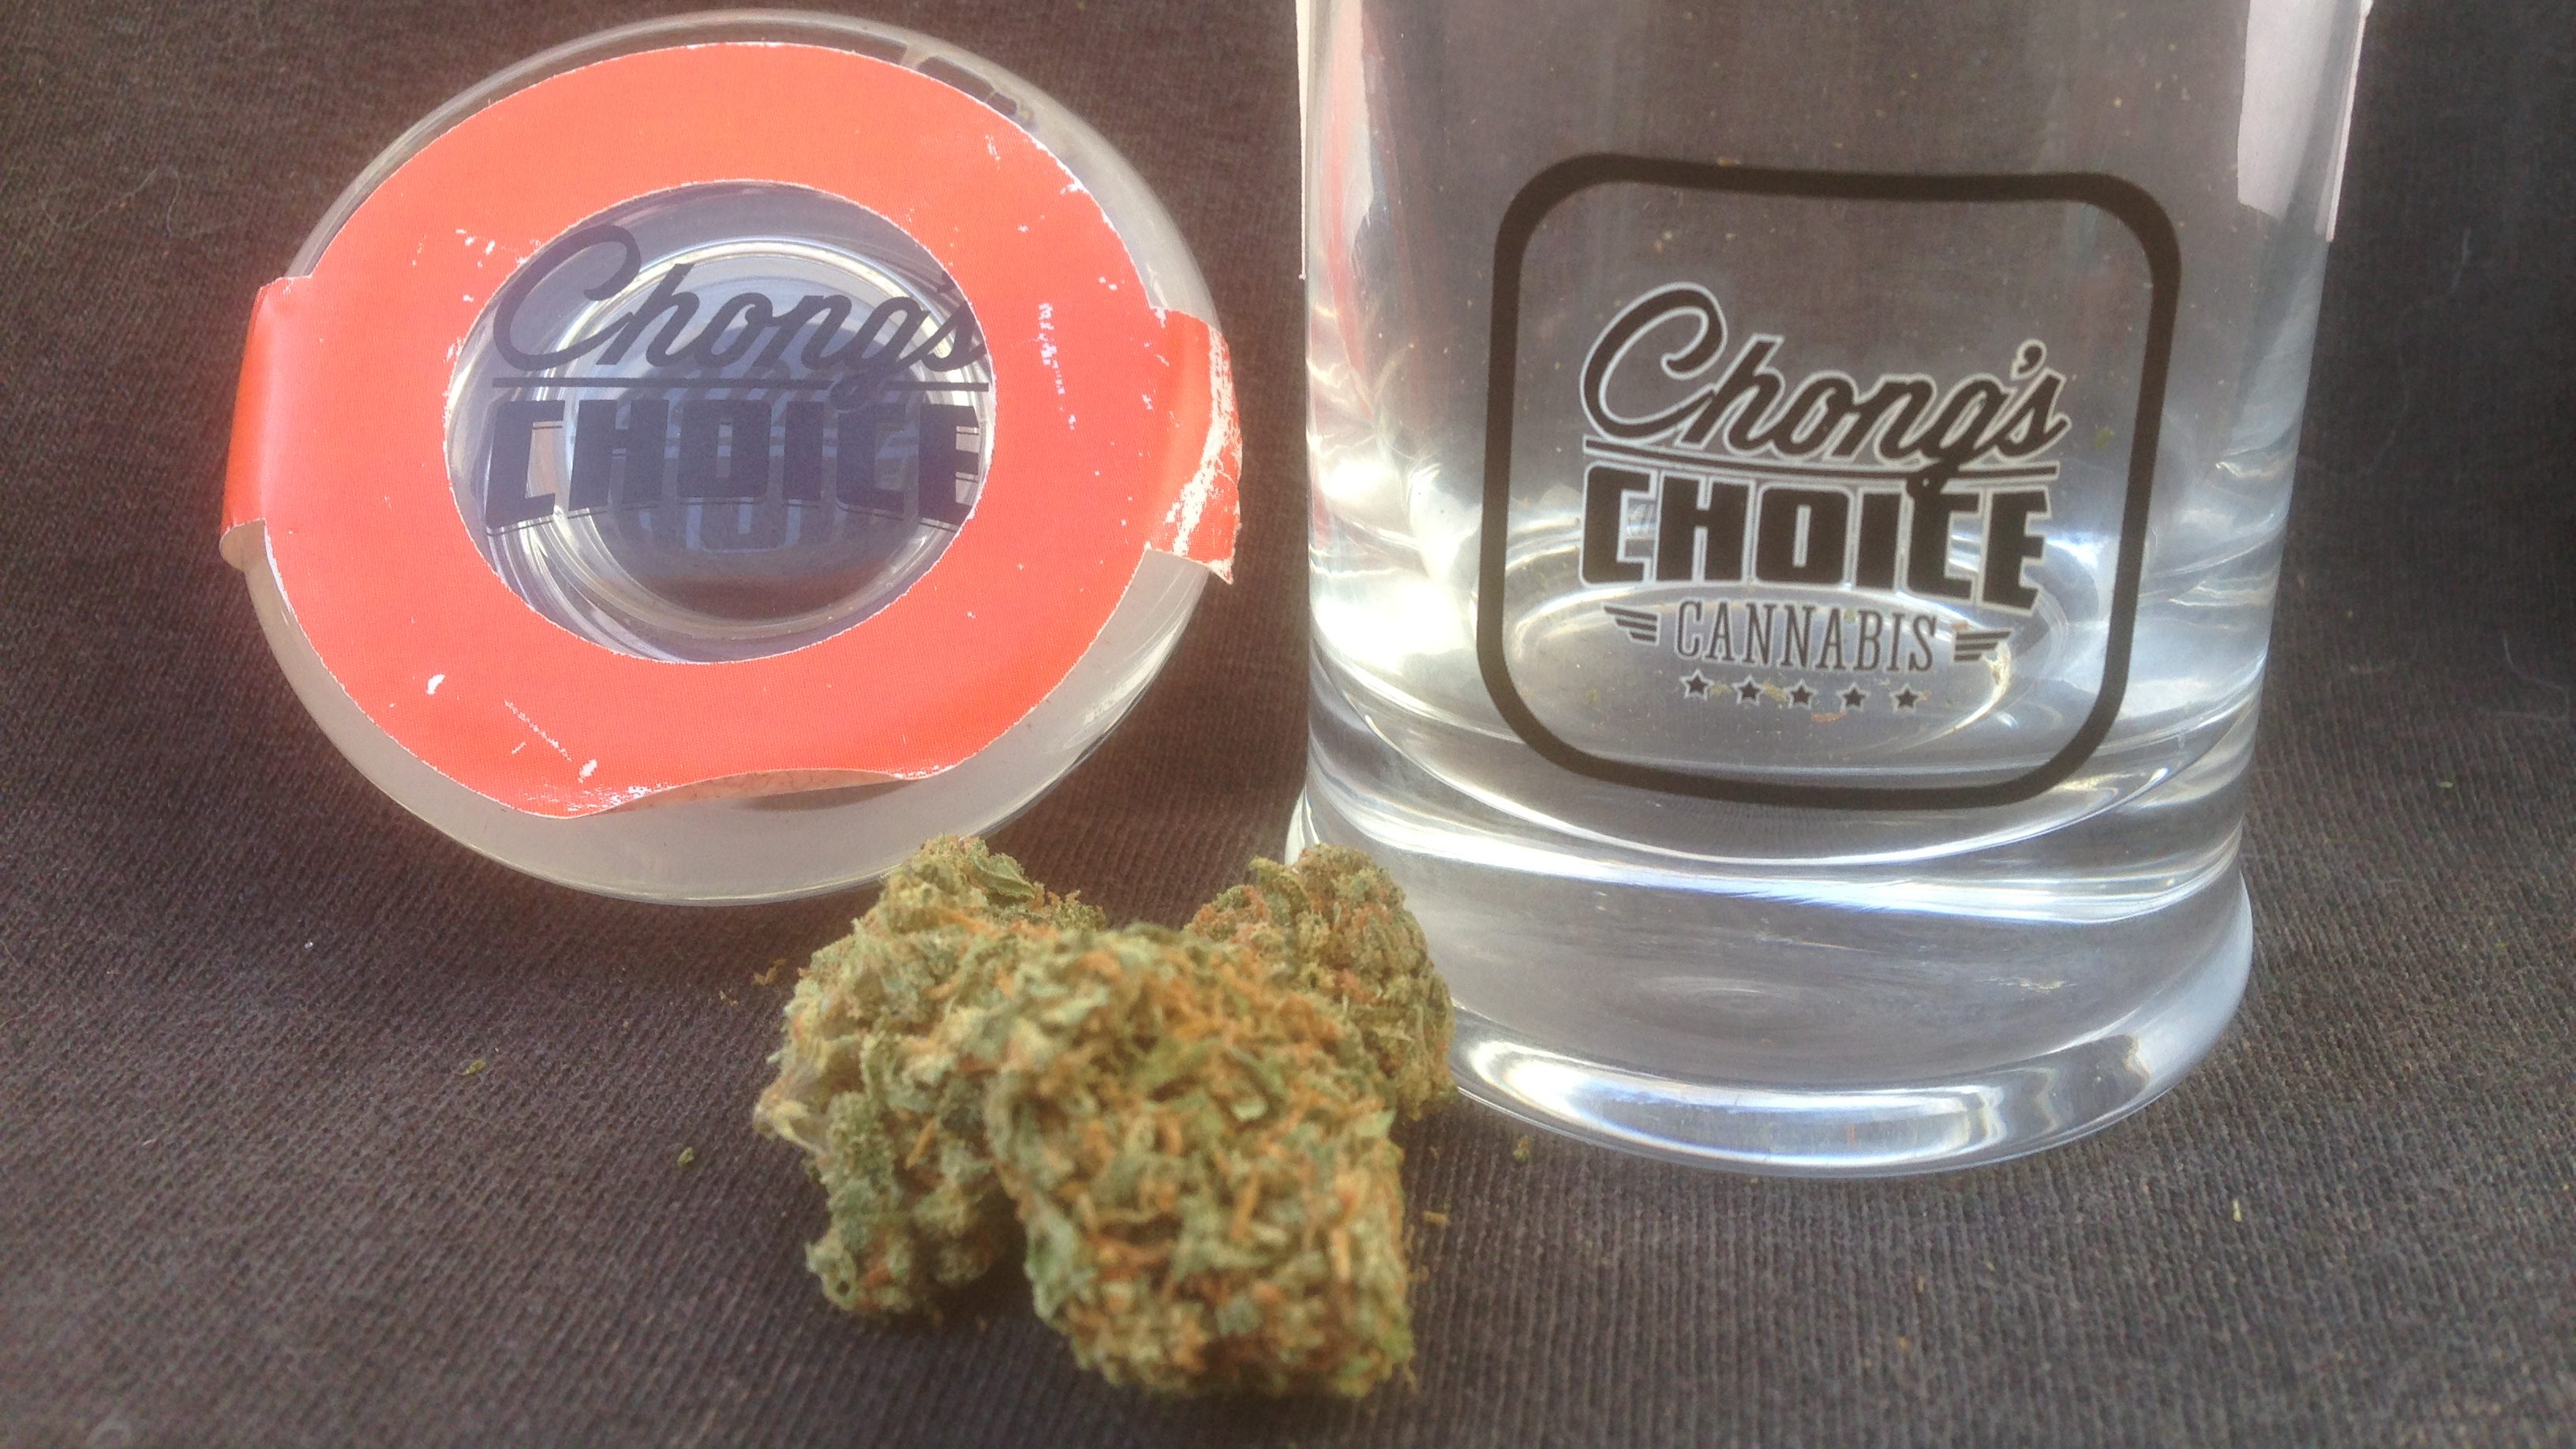 Chongs choice strain